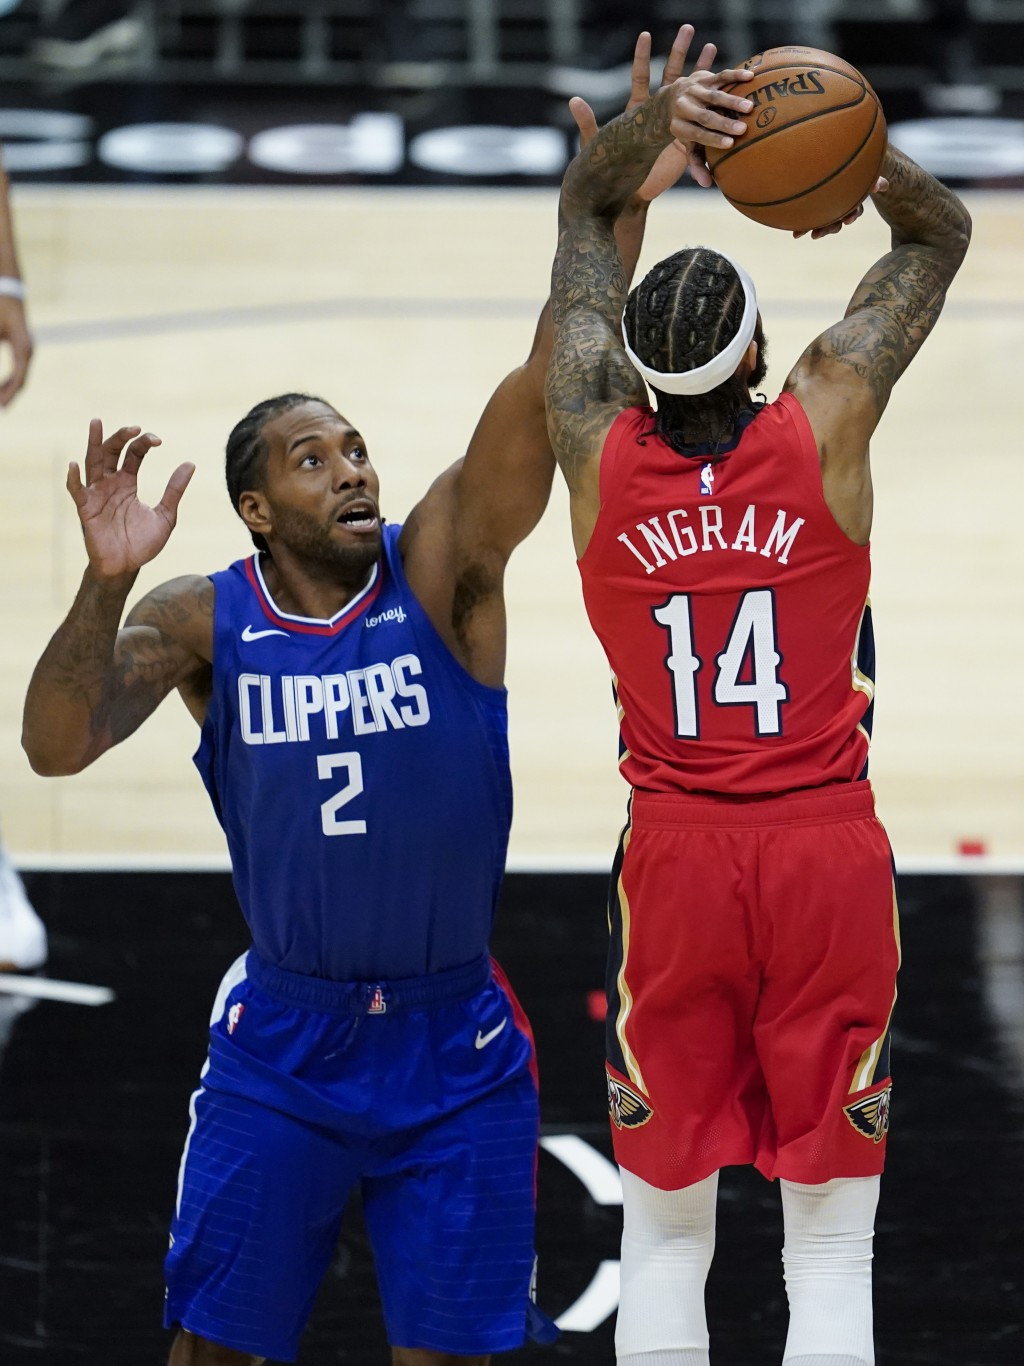 Los Angeles Clippers forward Kawhi Leonard (2) defends against New Orleans Pelicans forward Brandon Ingram (14) during the first quarter of an NBA bas...